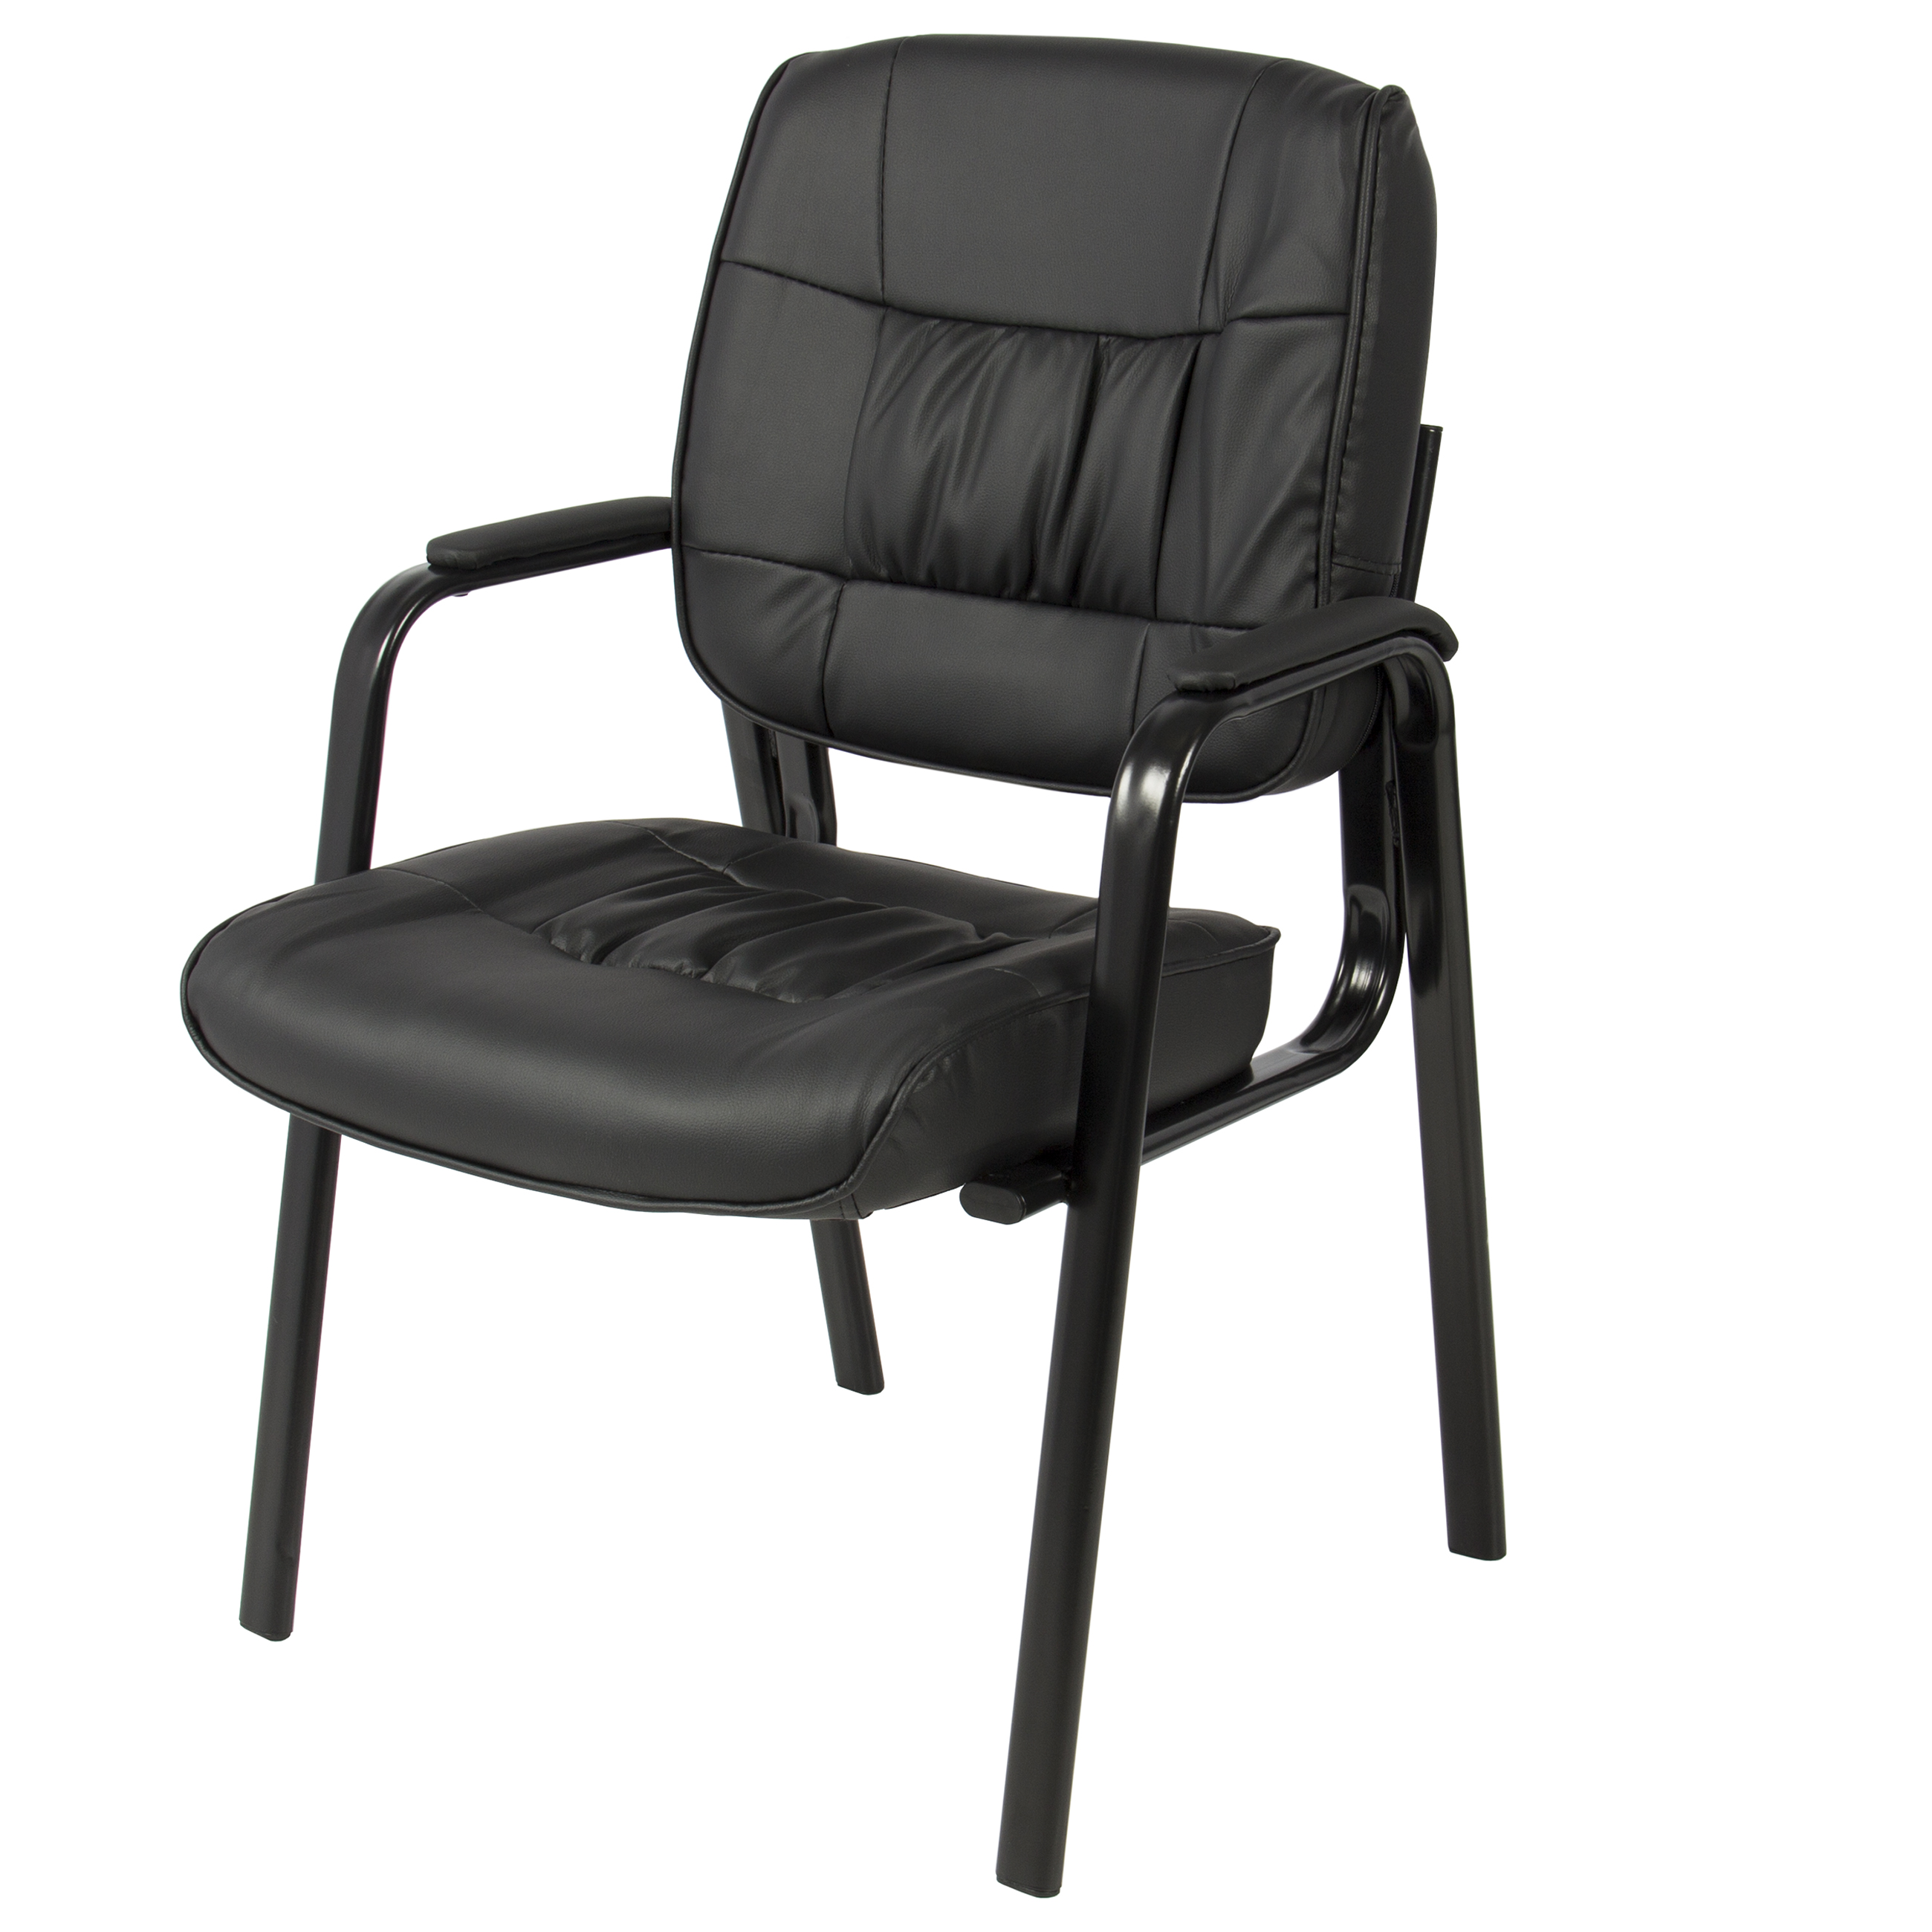 Excellent Best Choice Products Padded Leather Reception Office Side Chair Black Caraccident5 Cool Chair Designs And Ideas Caraccident5Info